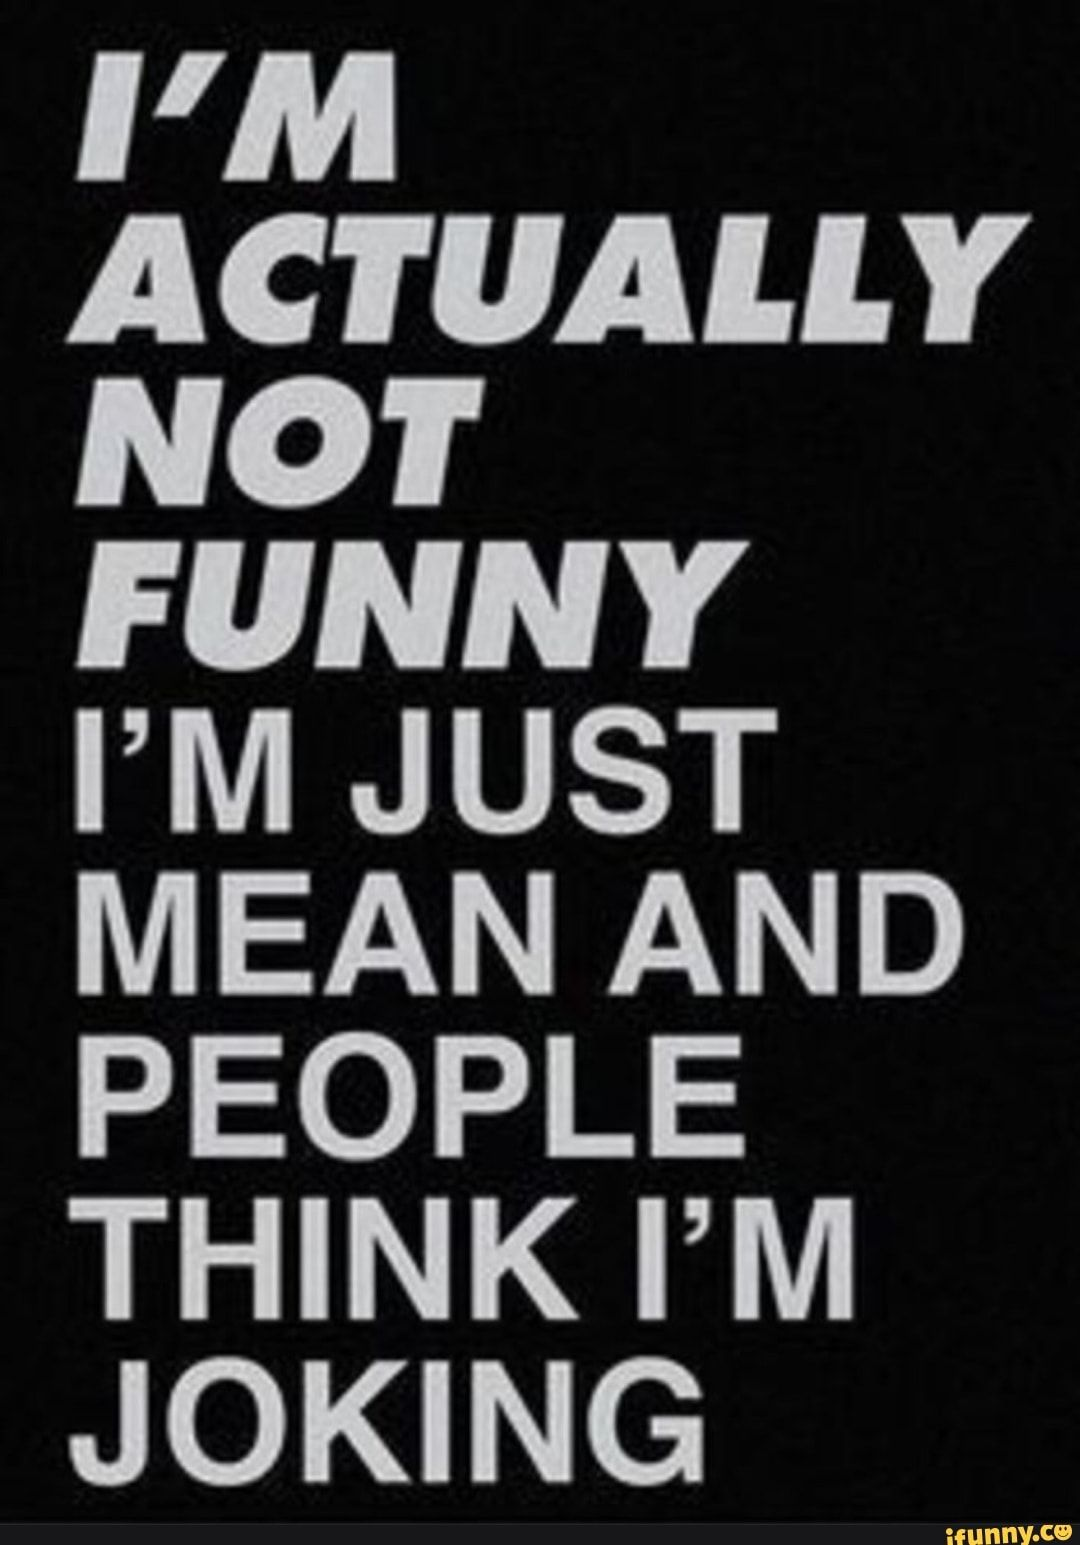 I M Actually Not Funny I M Just Mean And People Think I M Joking Ifunny Ironic Quotes Sarcastic Quotes Funny Funny Quotes